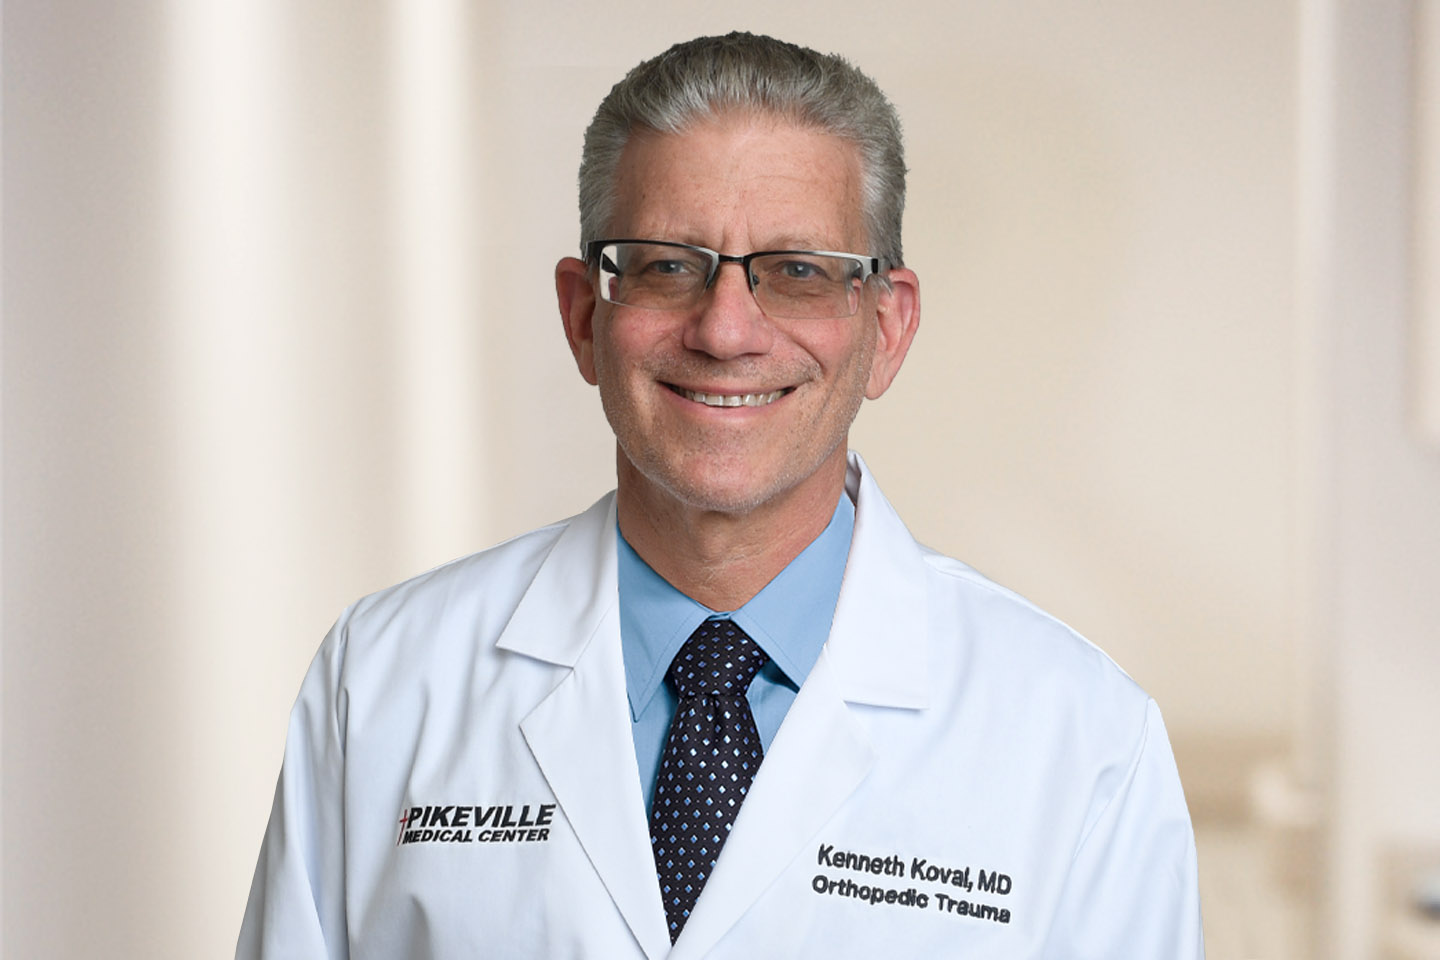 Kenneth Koval, MD